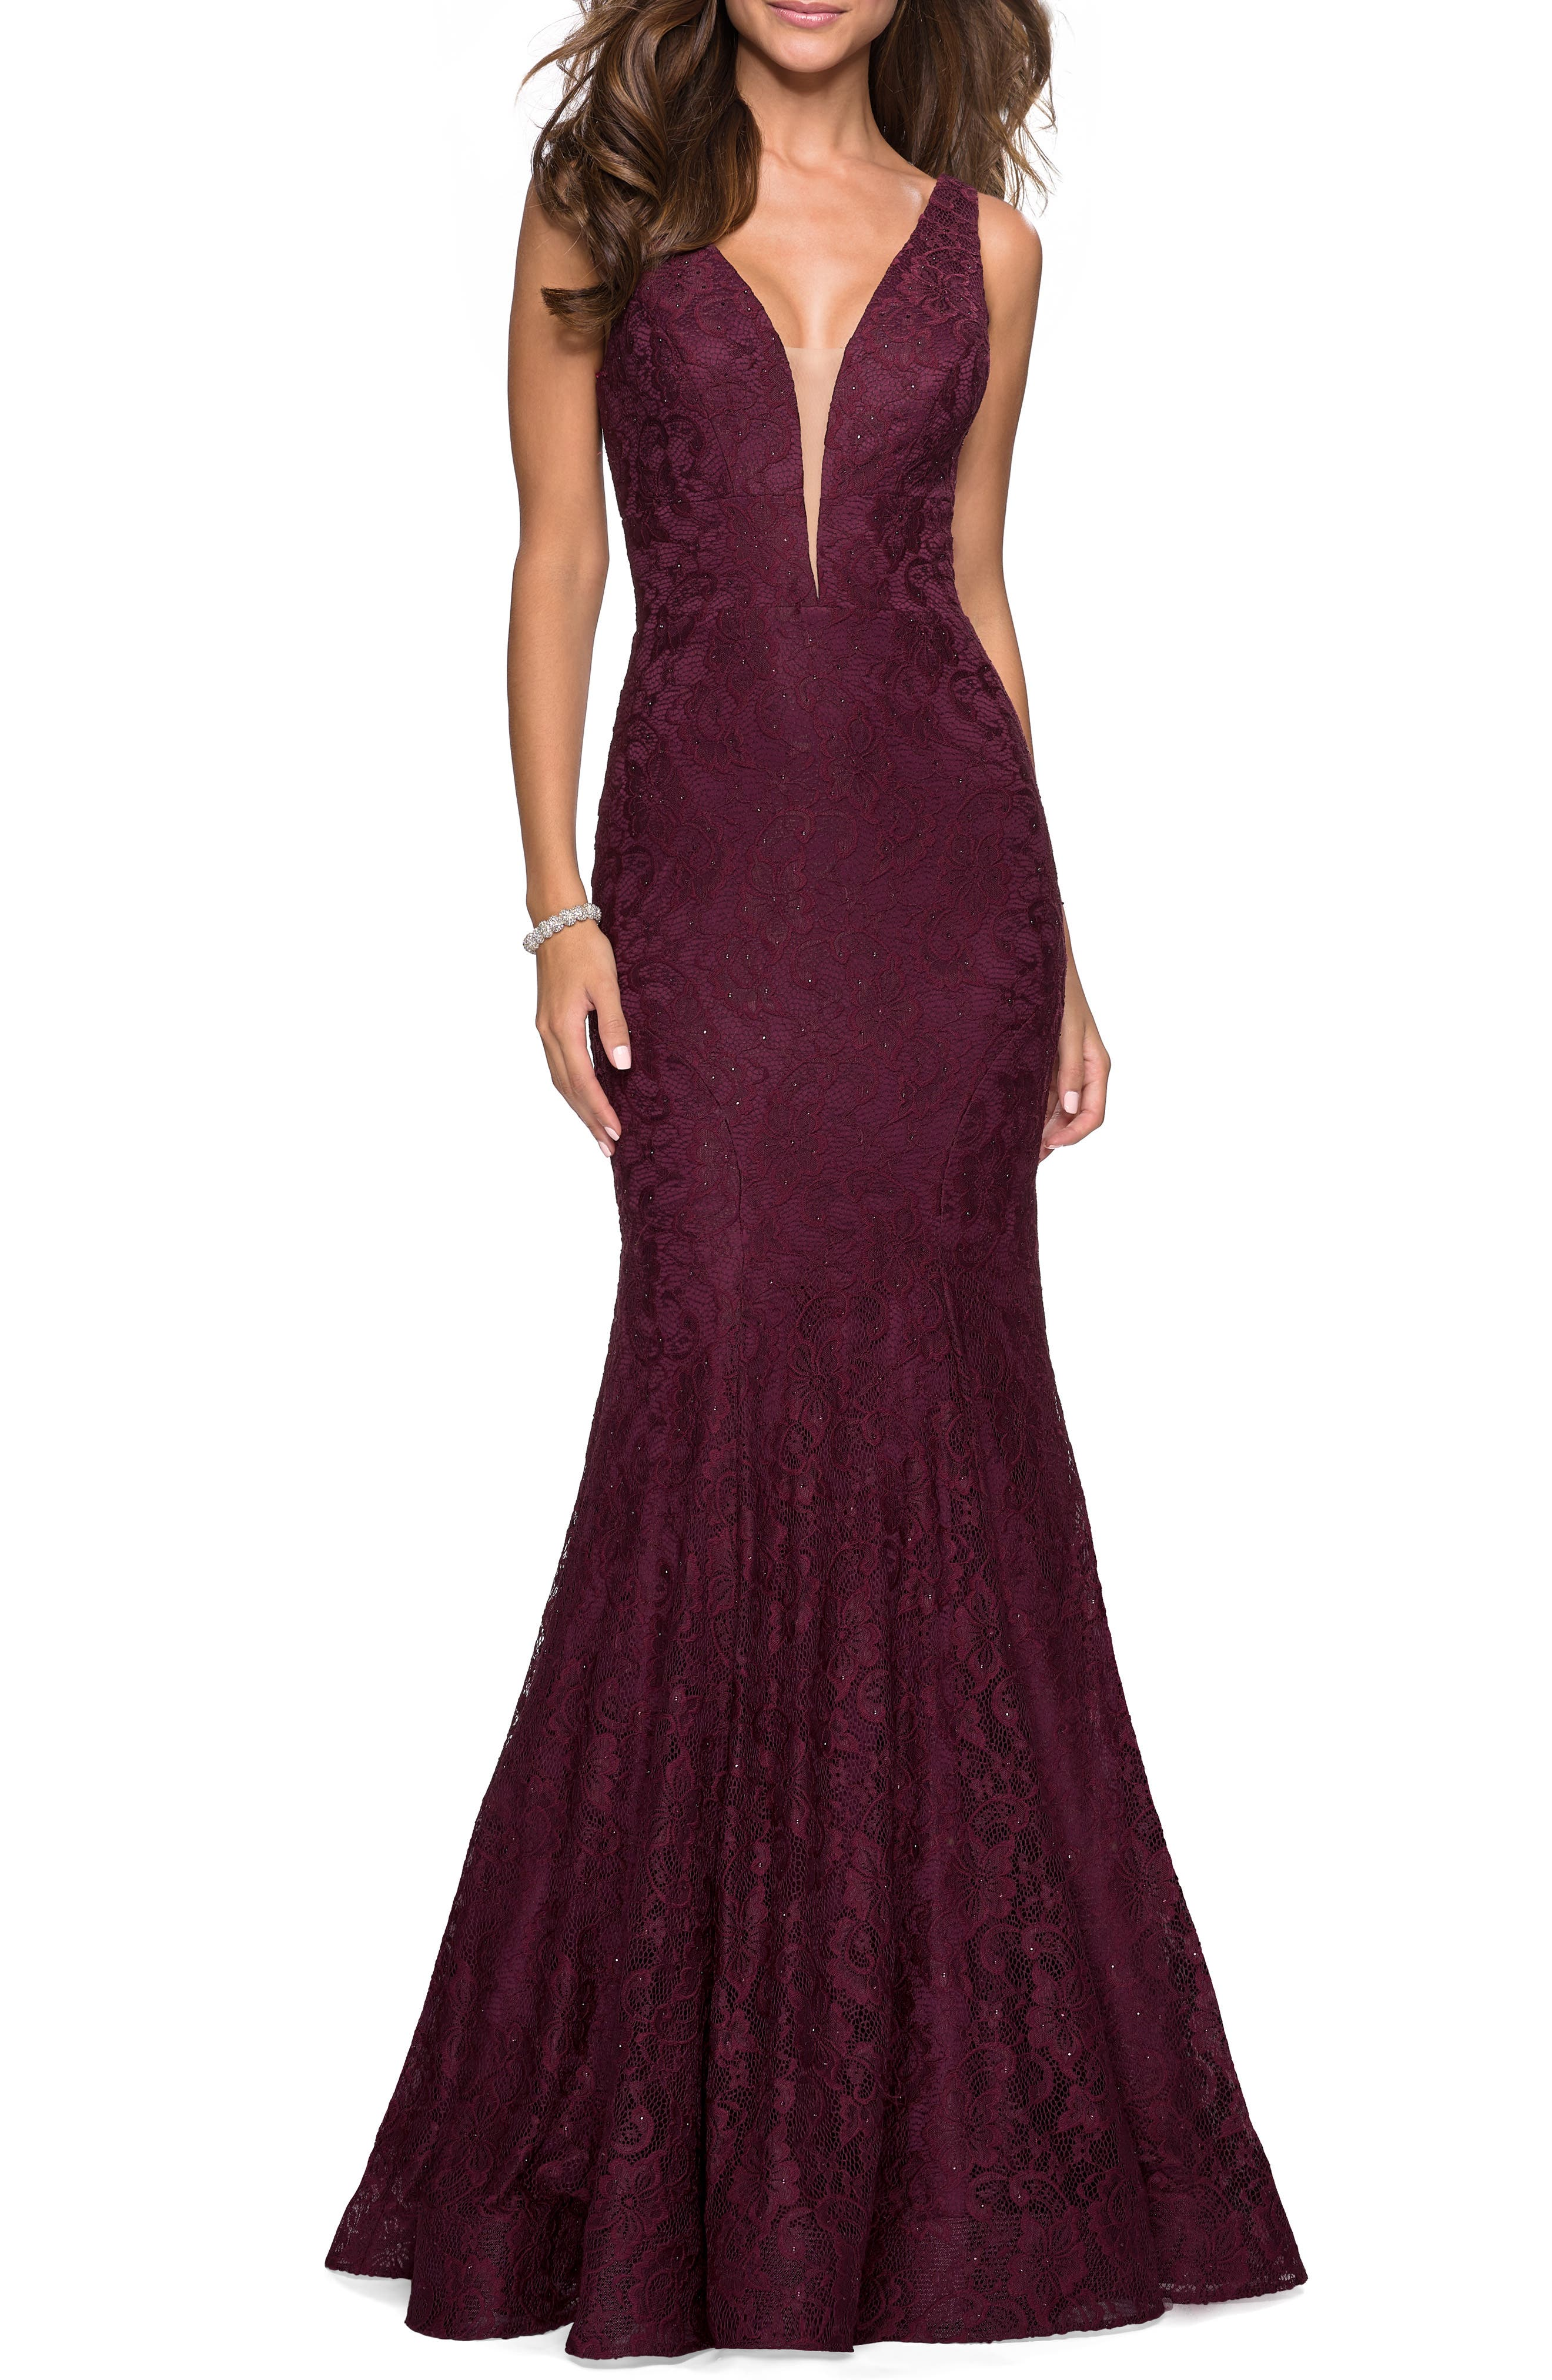 La Femme Plunge Neck Lace Evening Dress With Train, Red